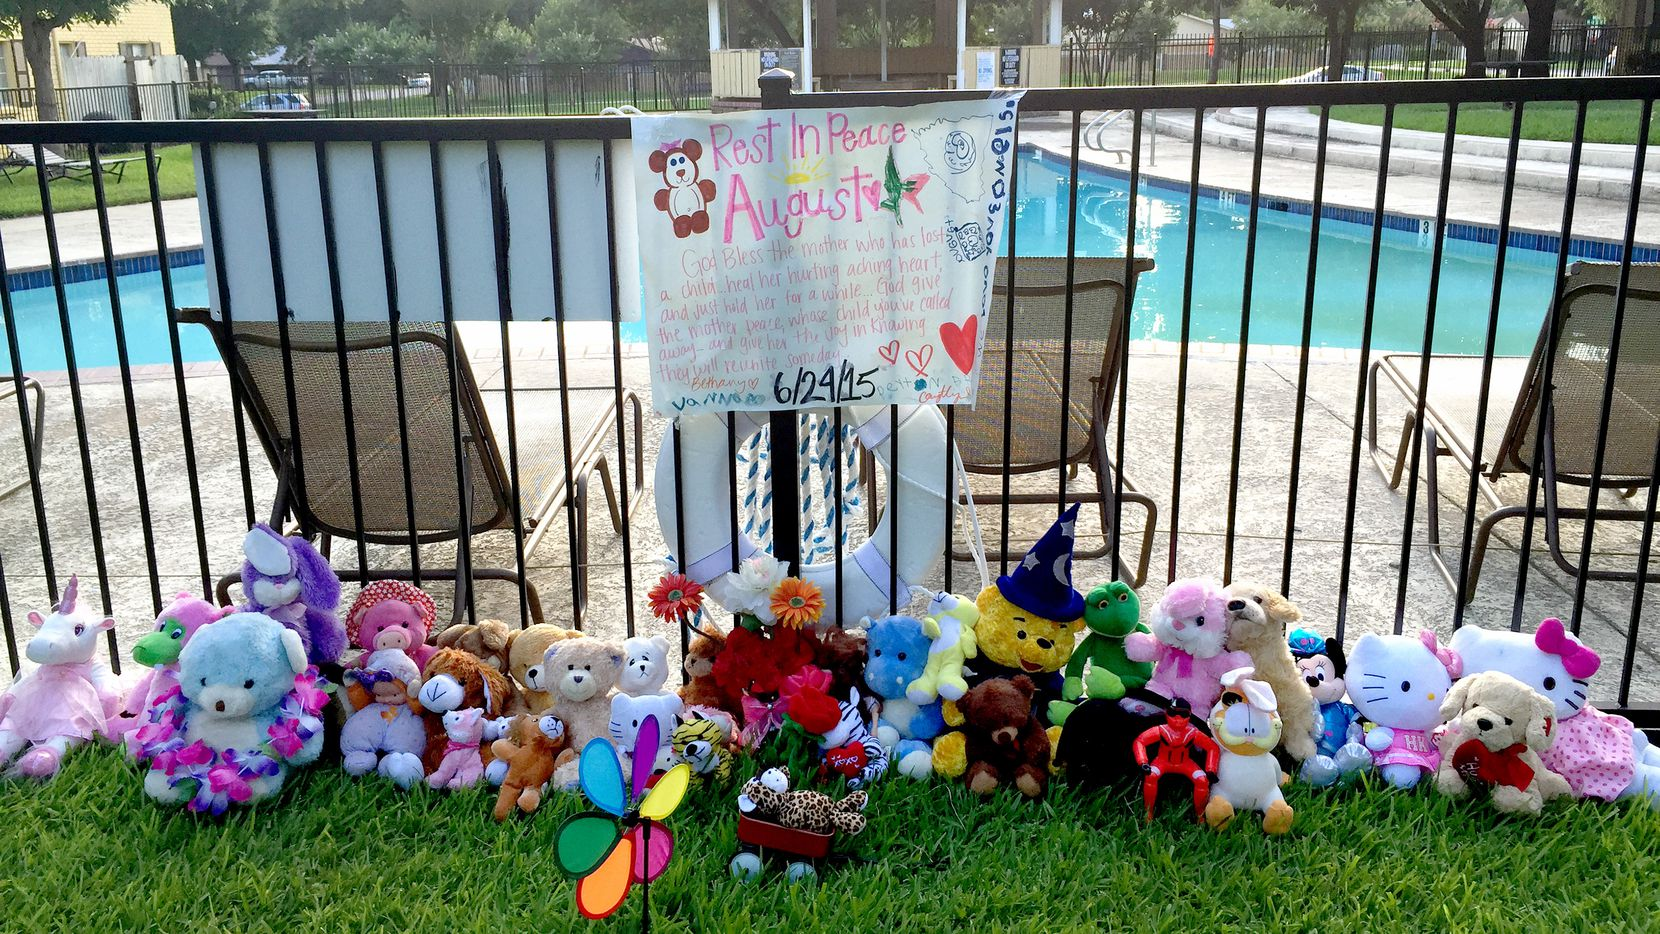 A memorial was set up outside the pool at the MacArthur Place at 183 complex in Irving where August Smith, 10, and her brothers, Treshawn Smith, 9, and Anthony Smith, 11, drowned.